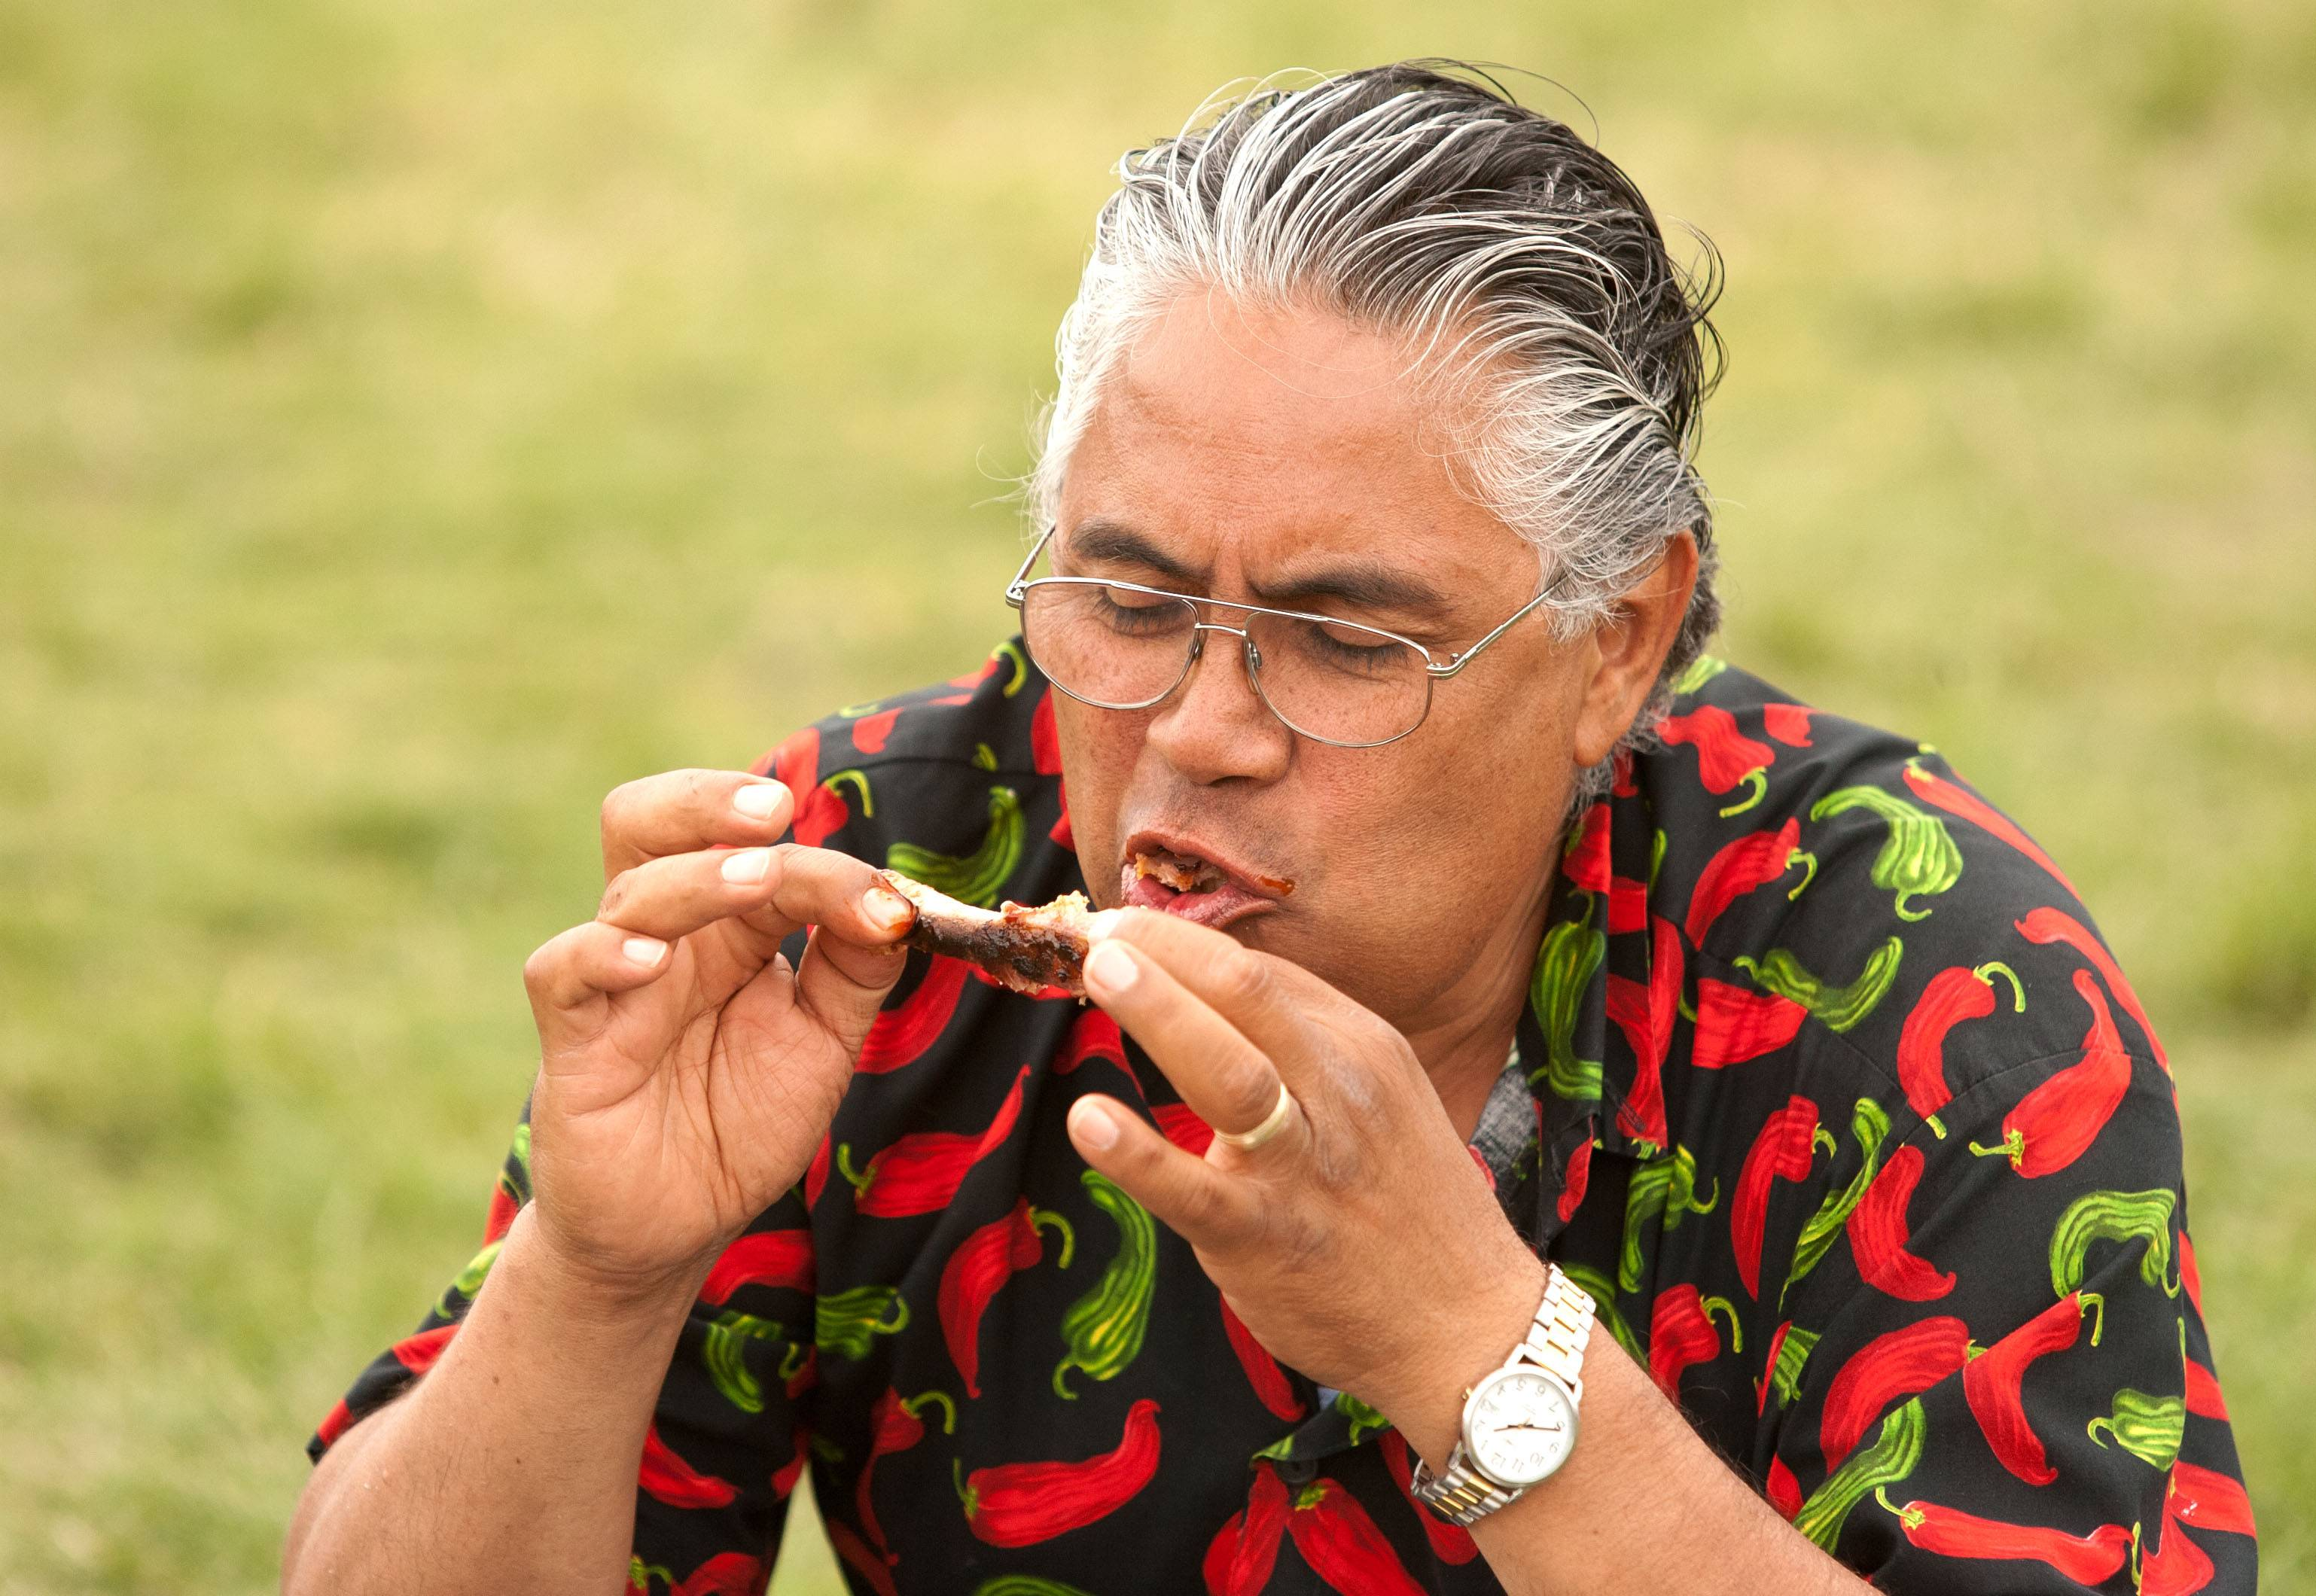 Robert Vasquez of Des Plaines enjoys his ribs during the first Hispanic Day at Ribfest in Naperville.